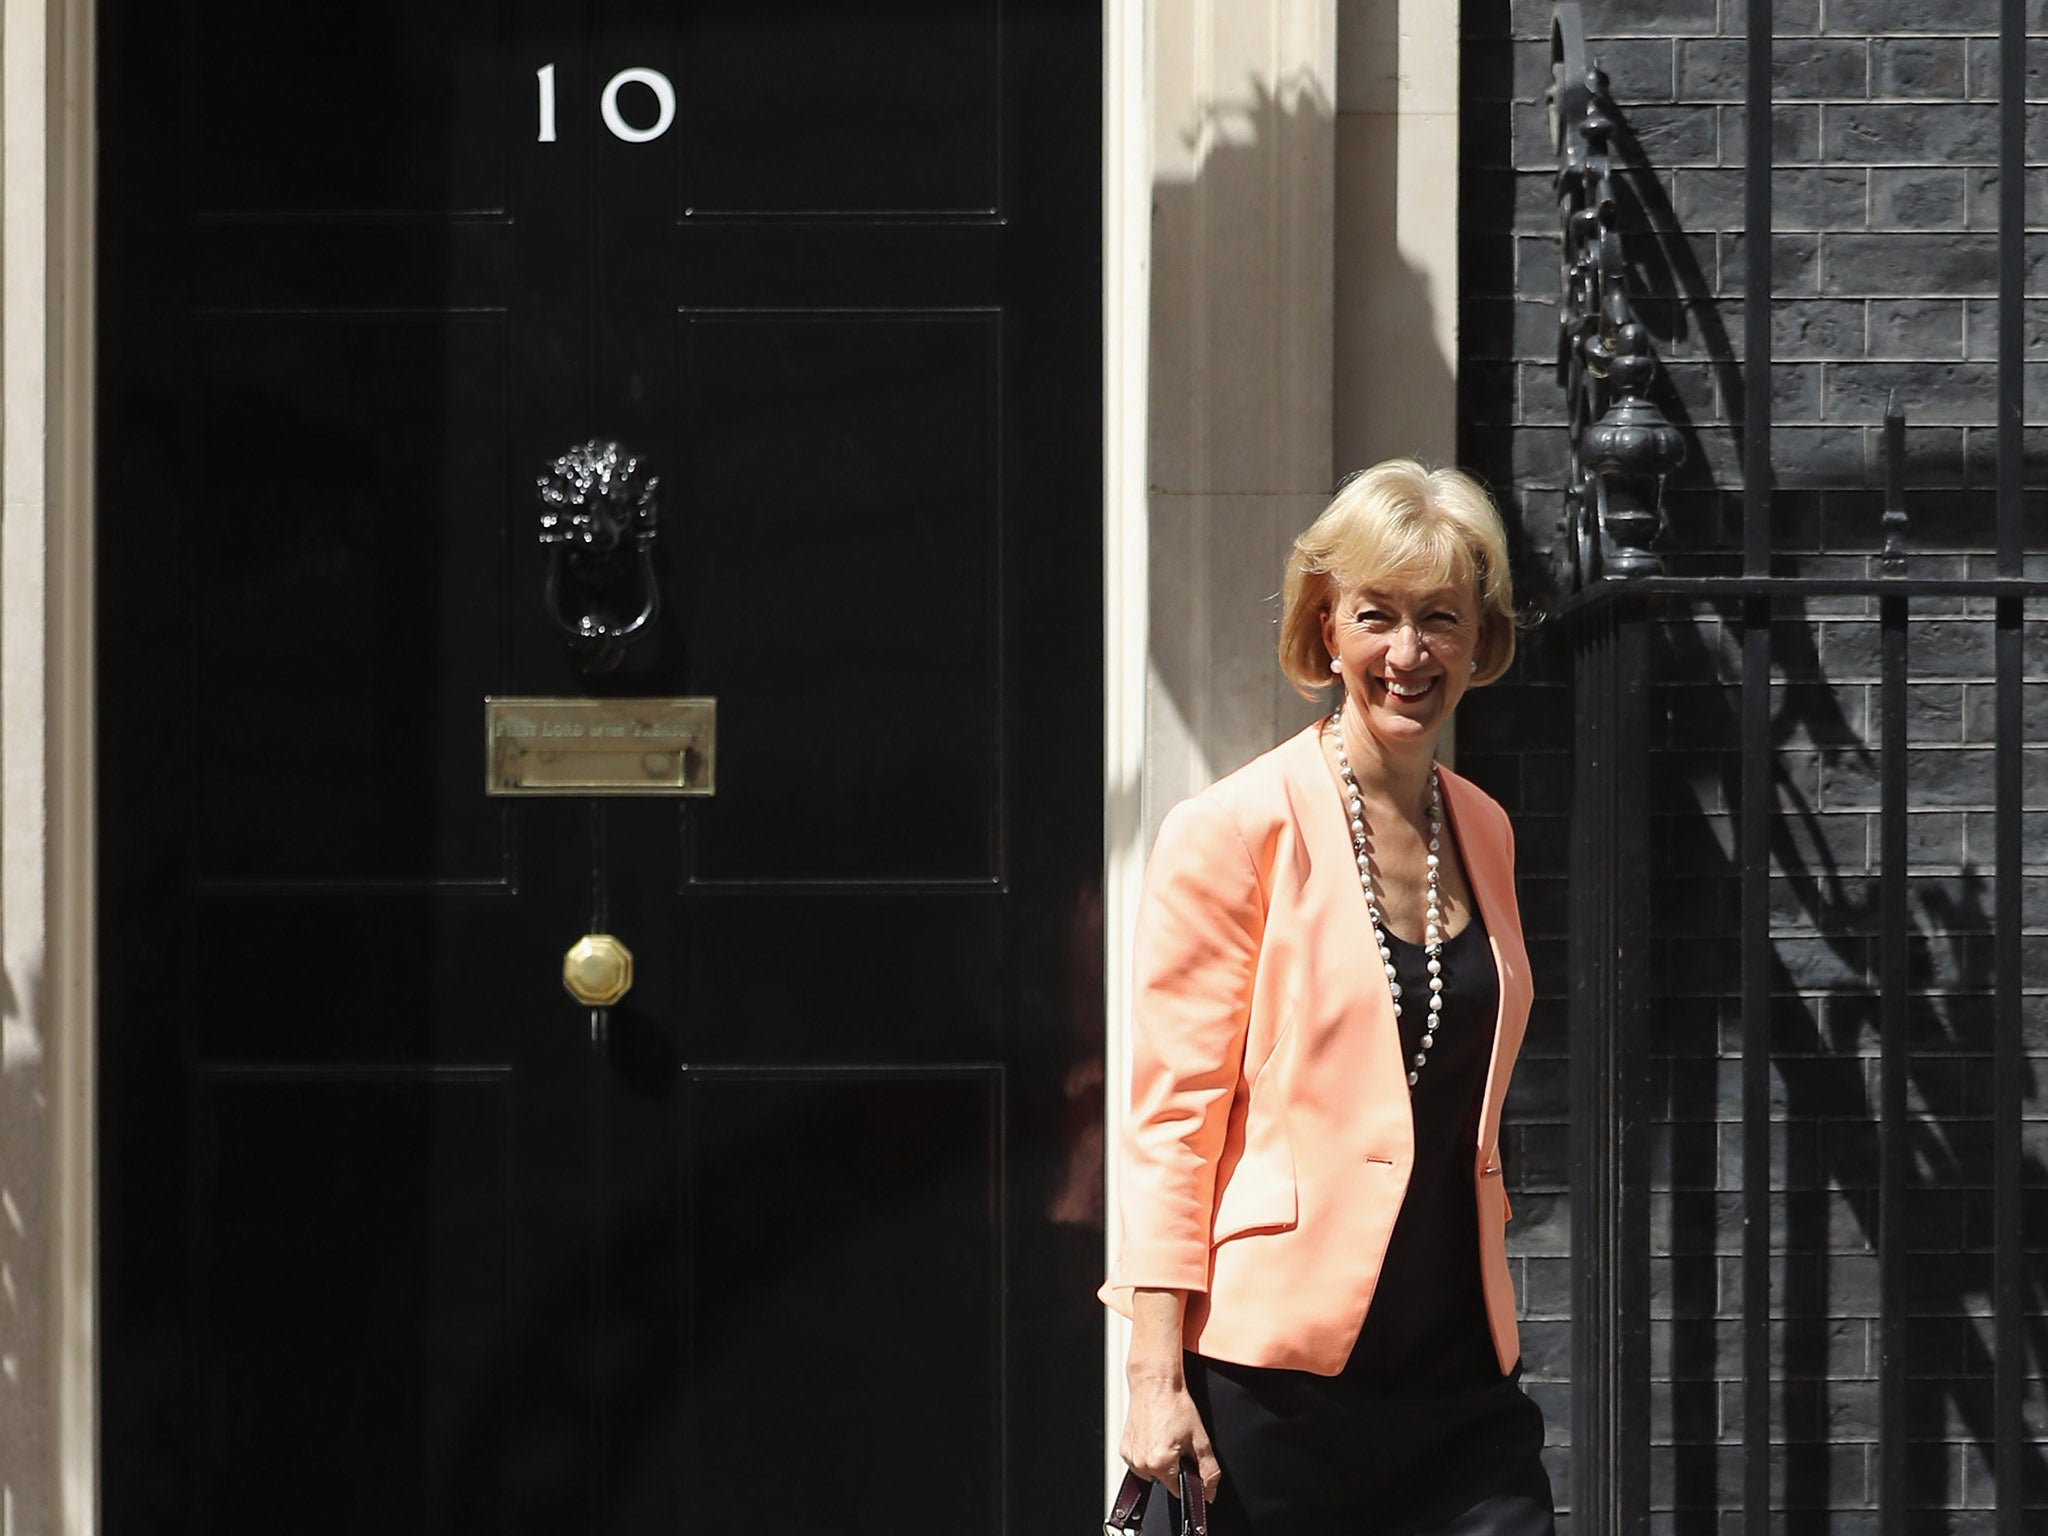 Andrea Leadsom named Defra Secretary in Theresa May Cabinet reshuffle